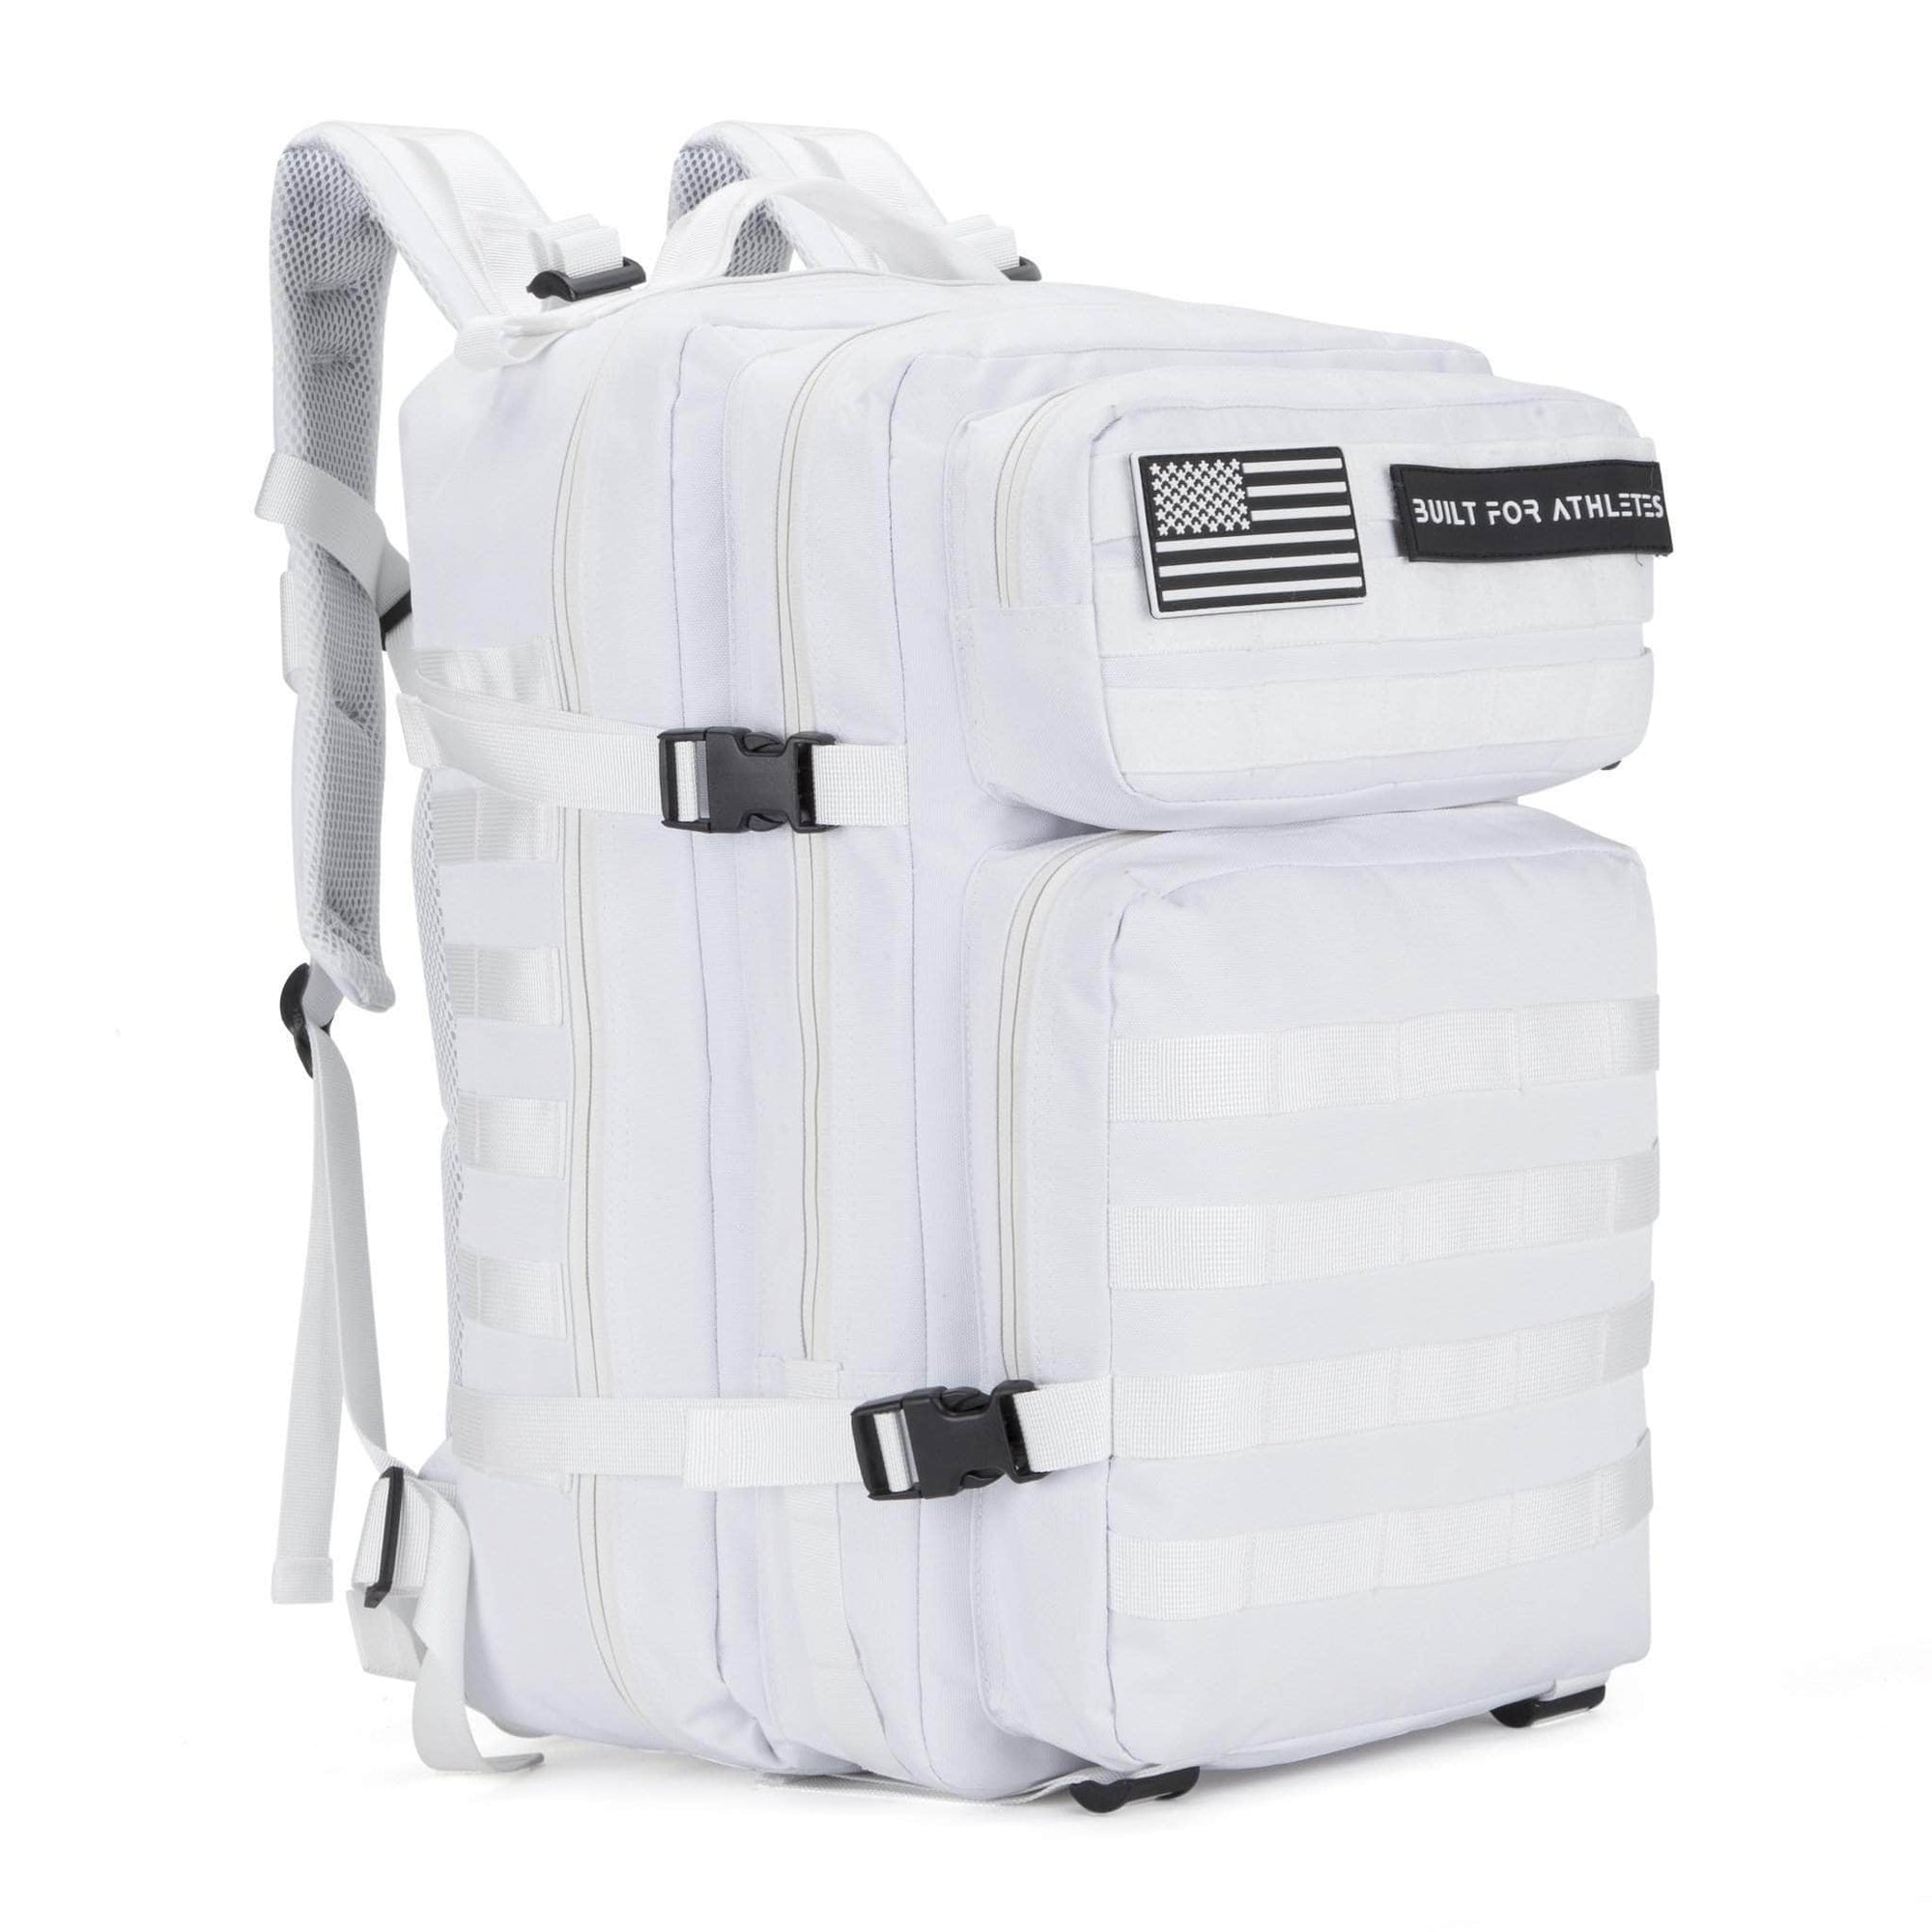 MetCon Store Backpacks White Hero Backpack